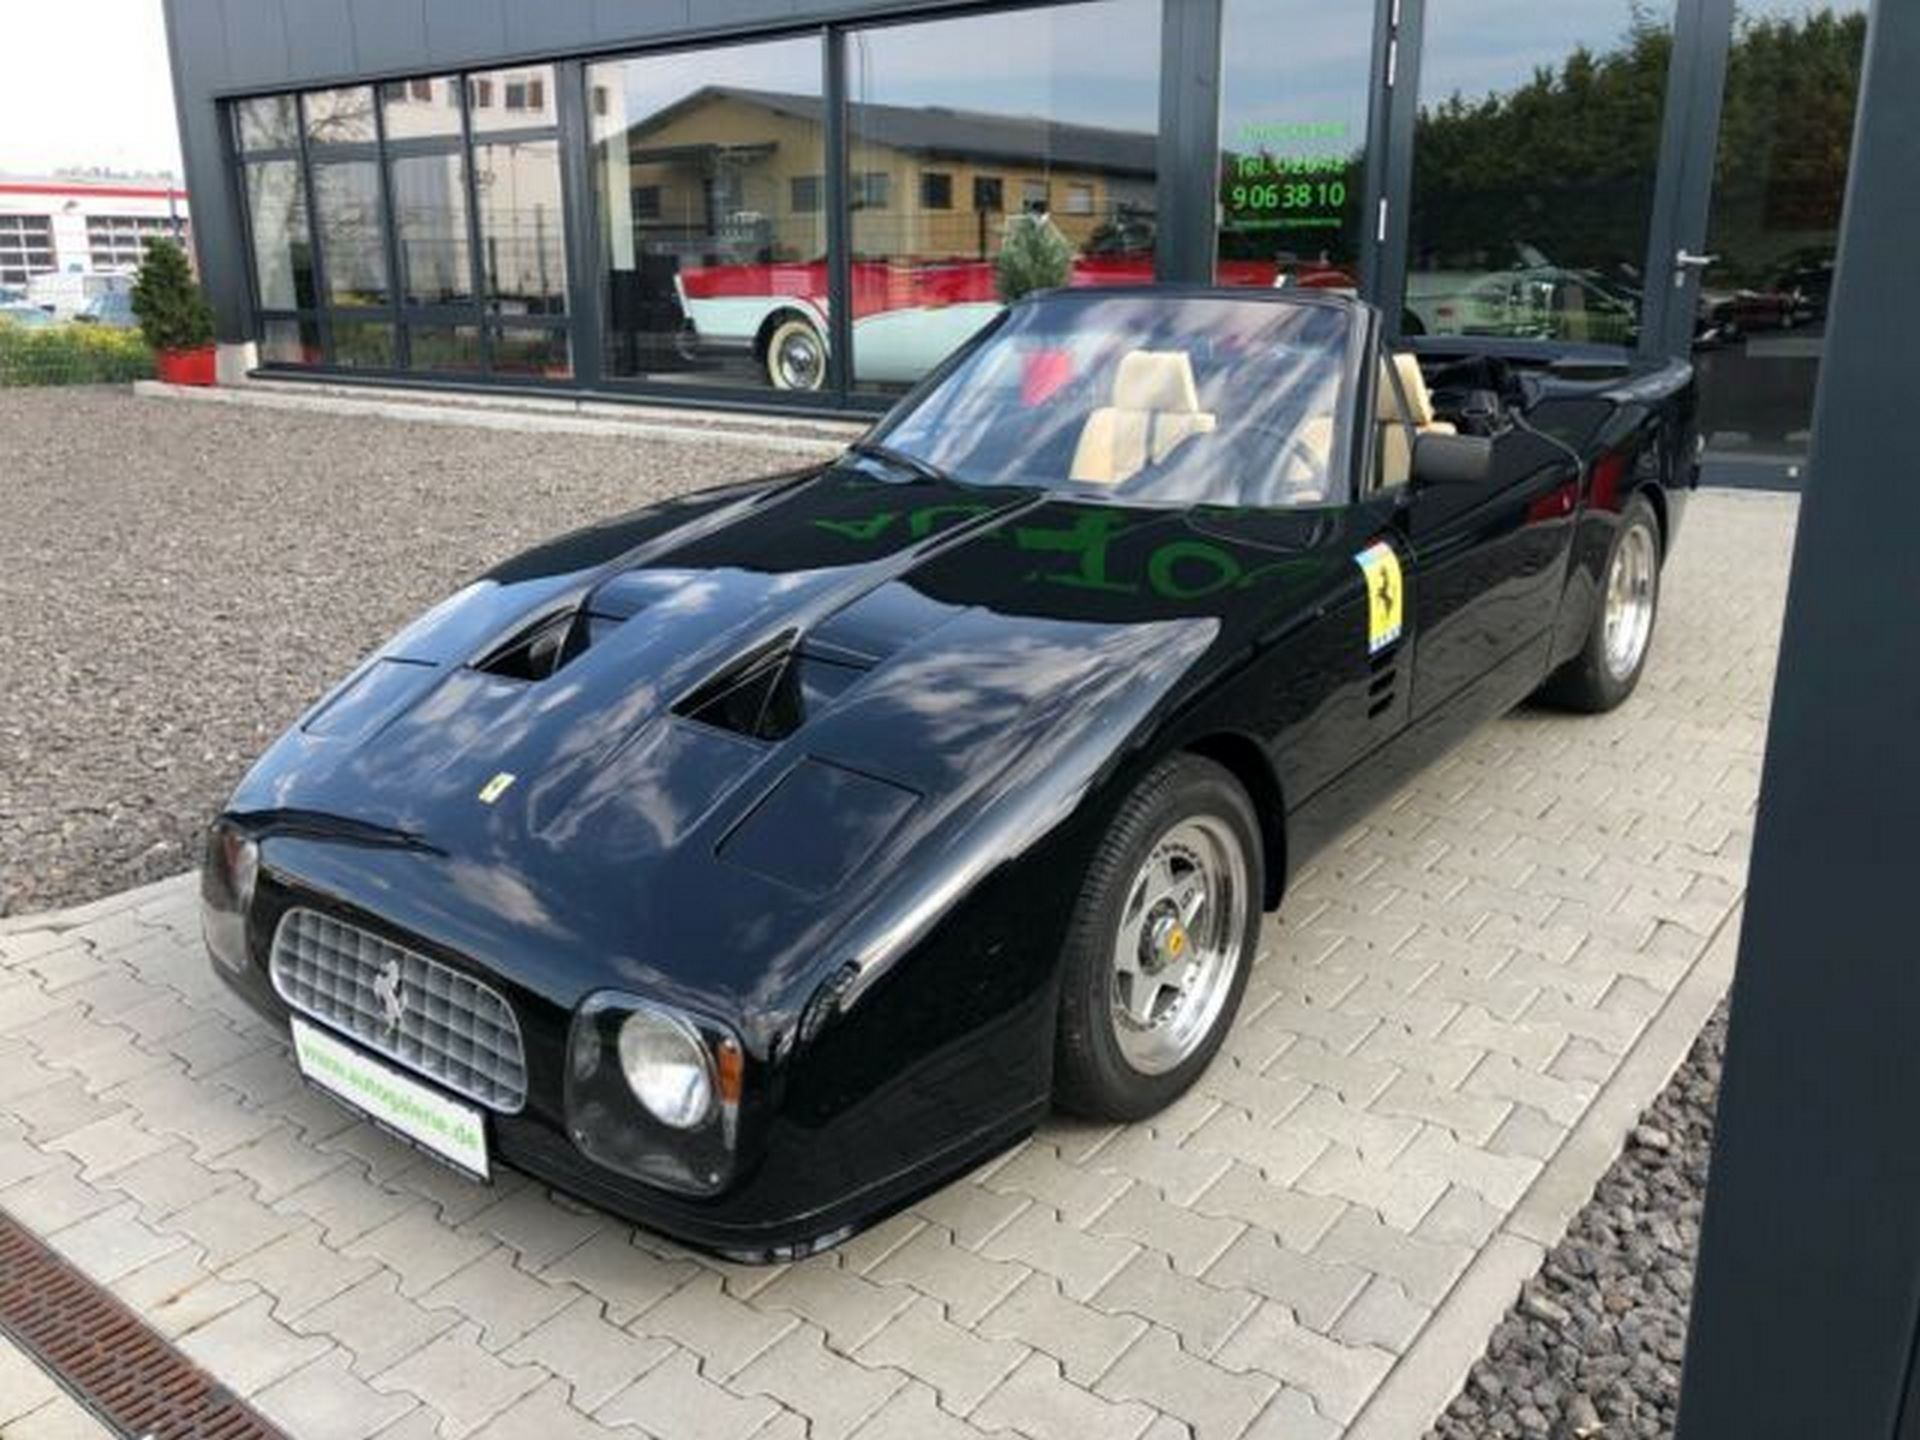 Ferrari-365-GT-NART-for-sale-1